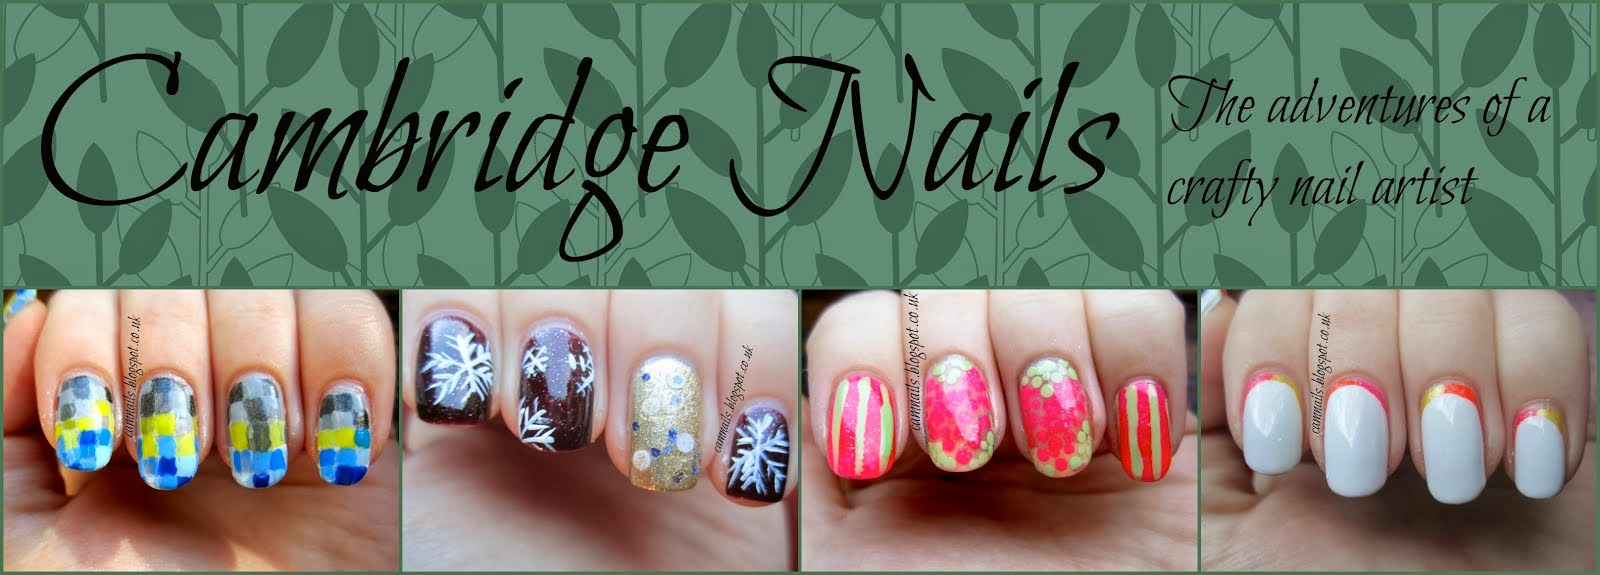 Cambridge Nails